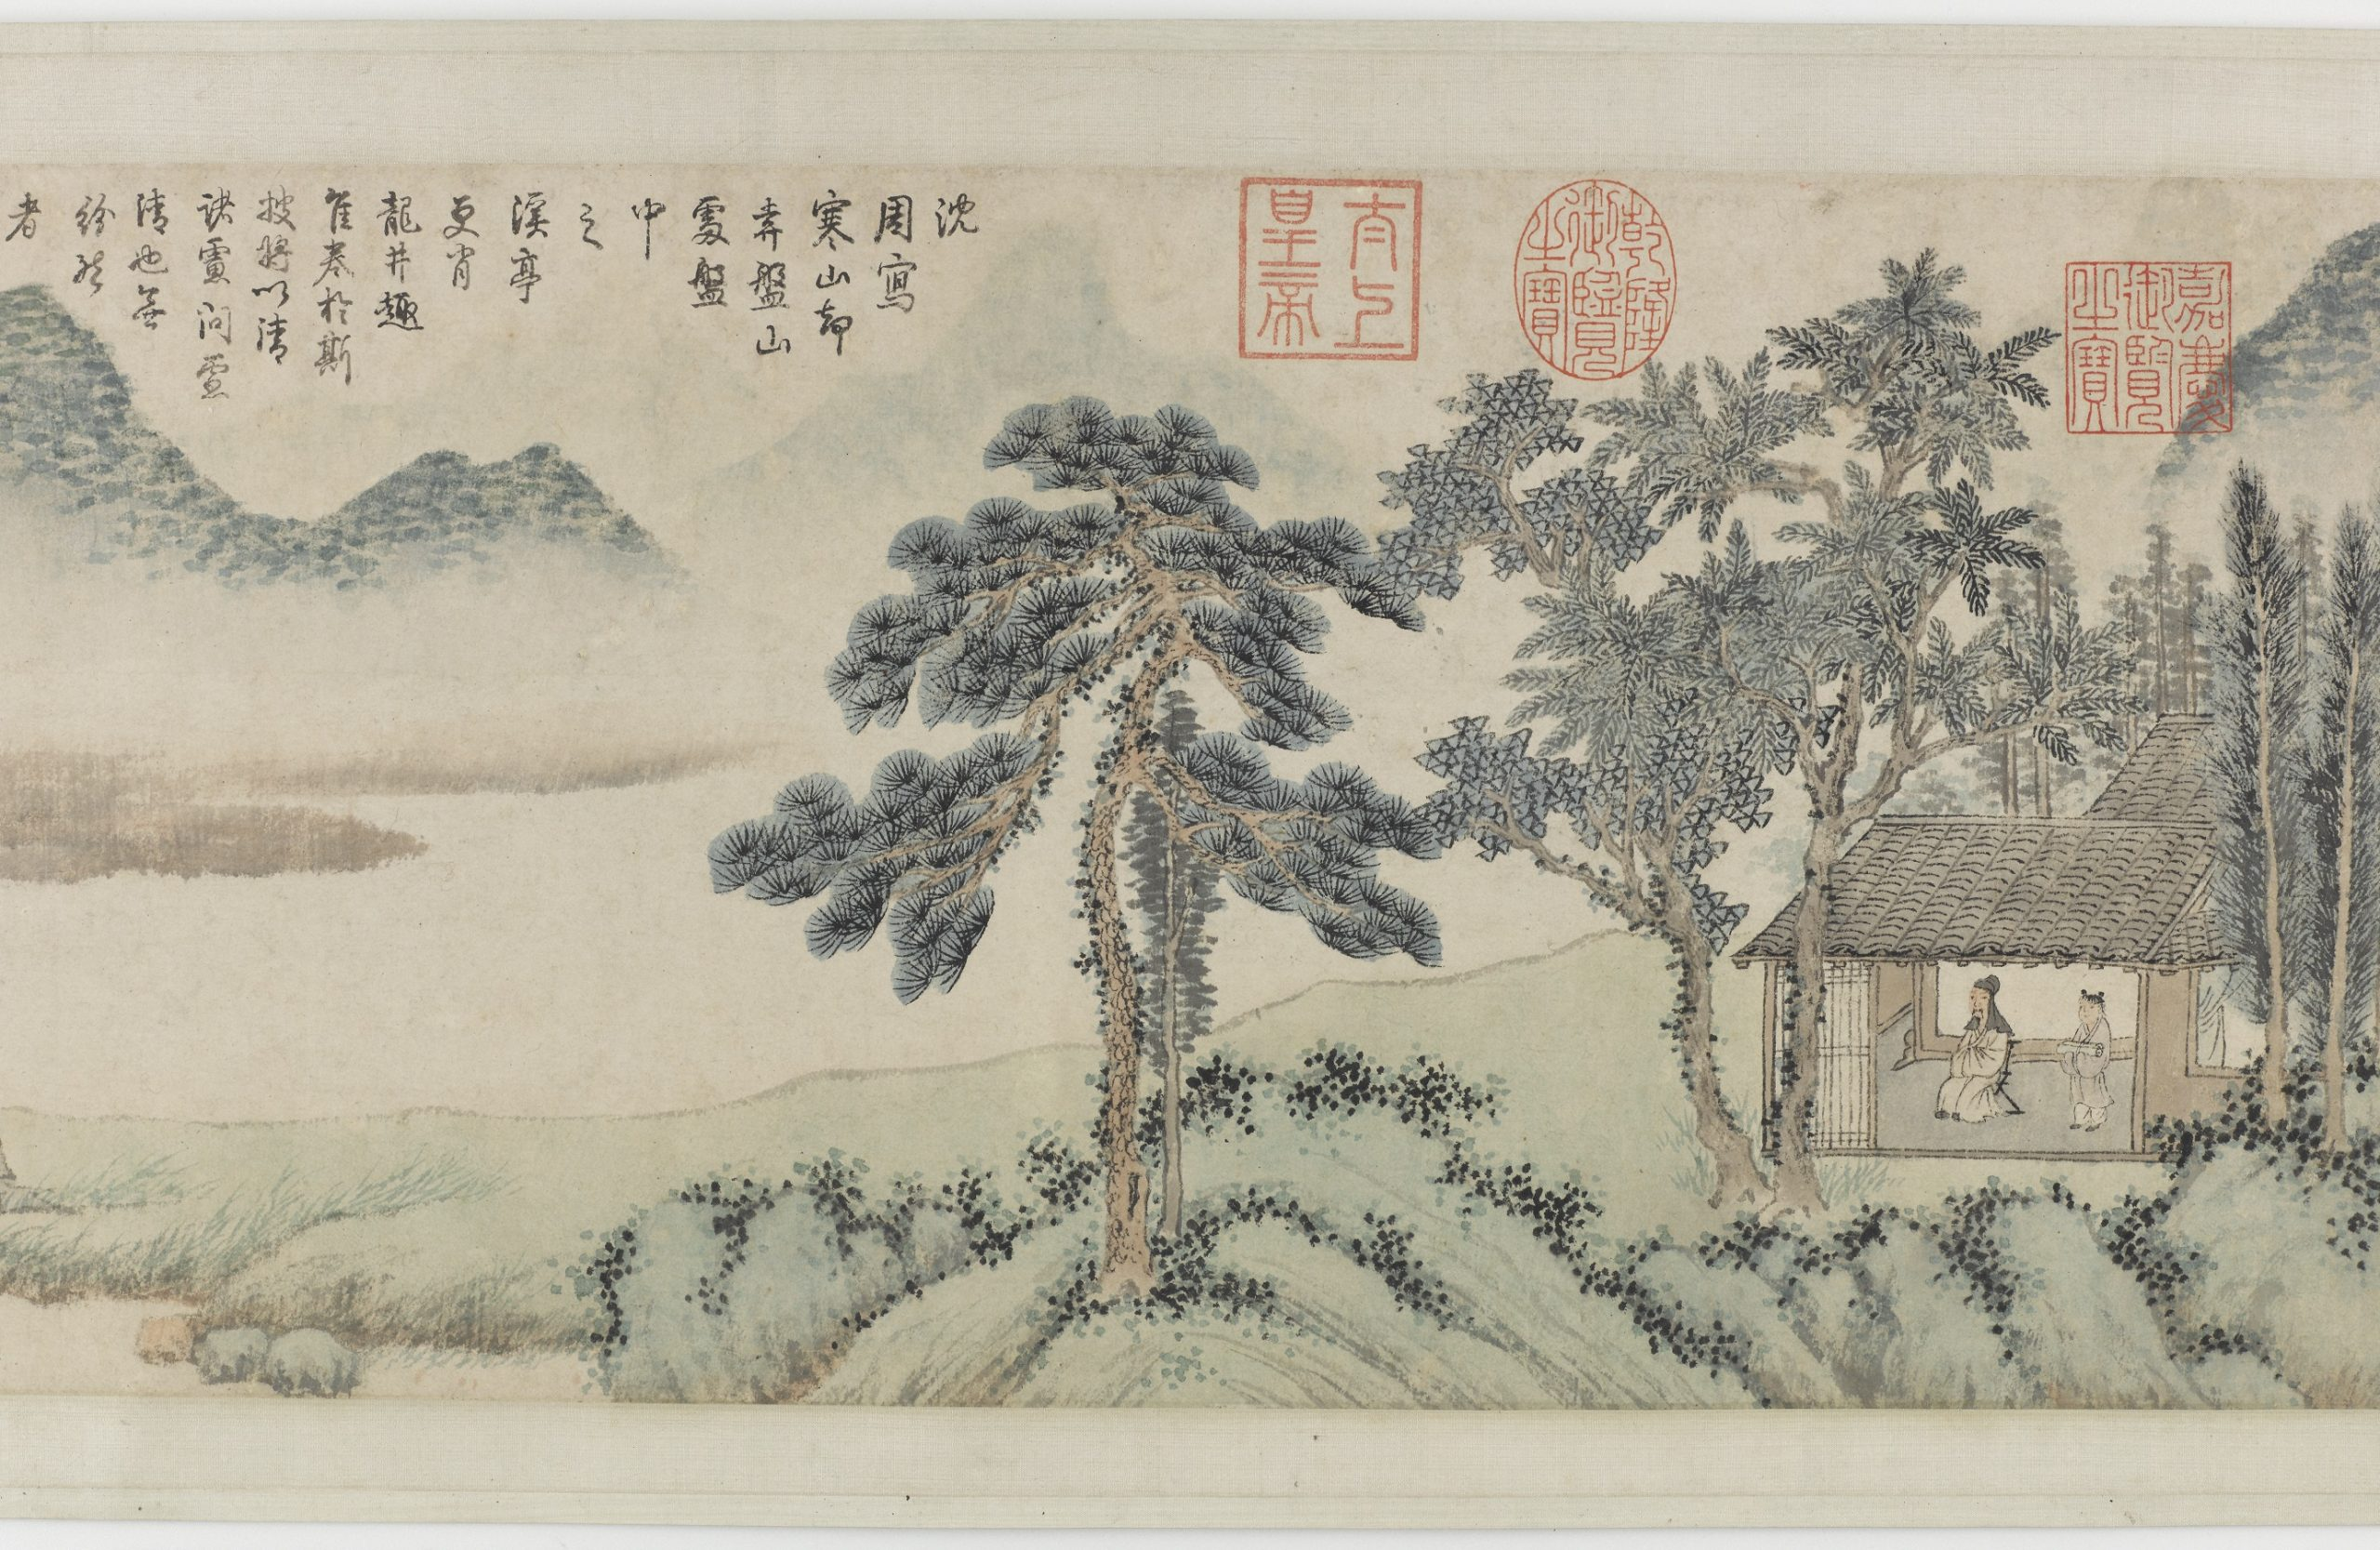 two people in a house under trees in a landscape